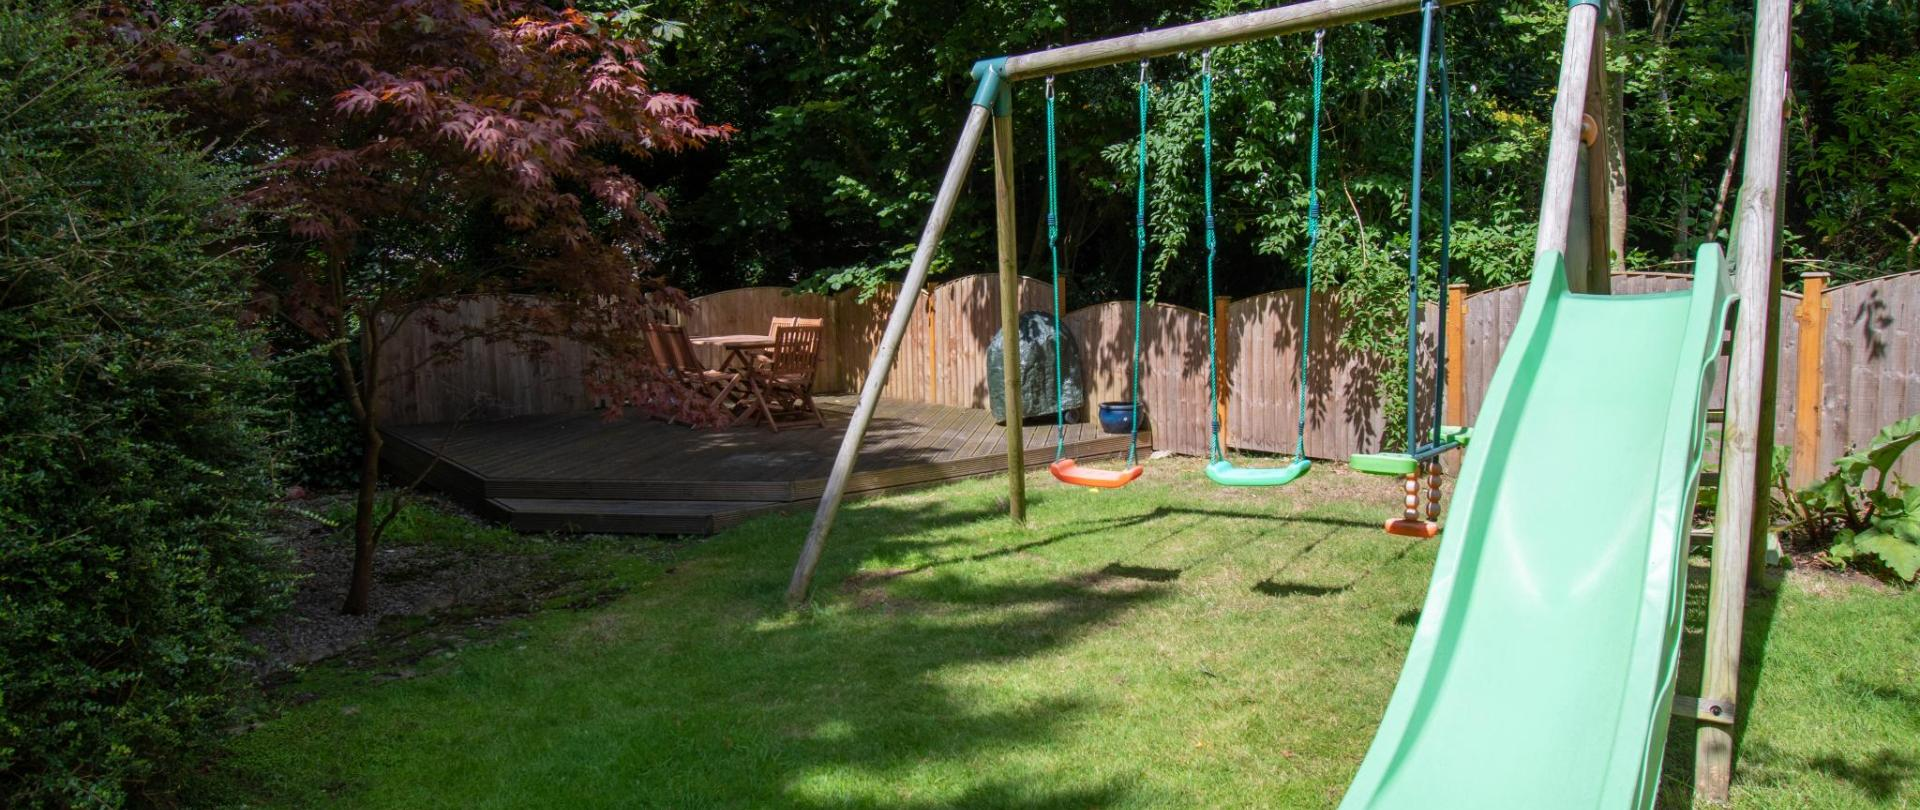 Play Area / Decked Seating Area